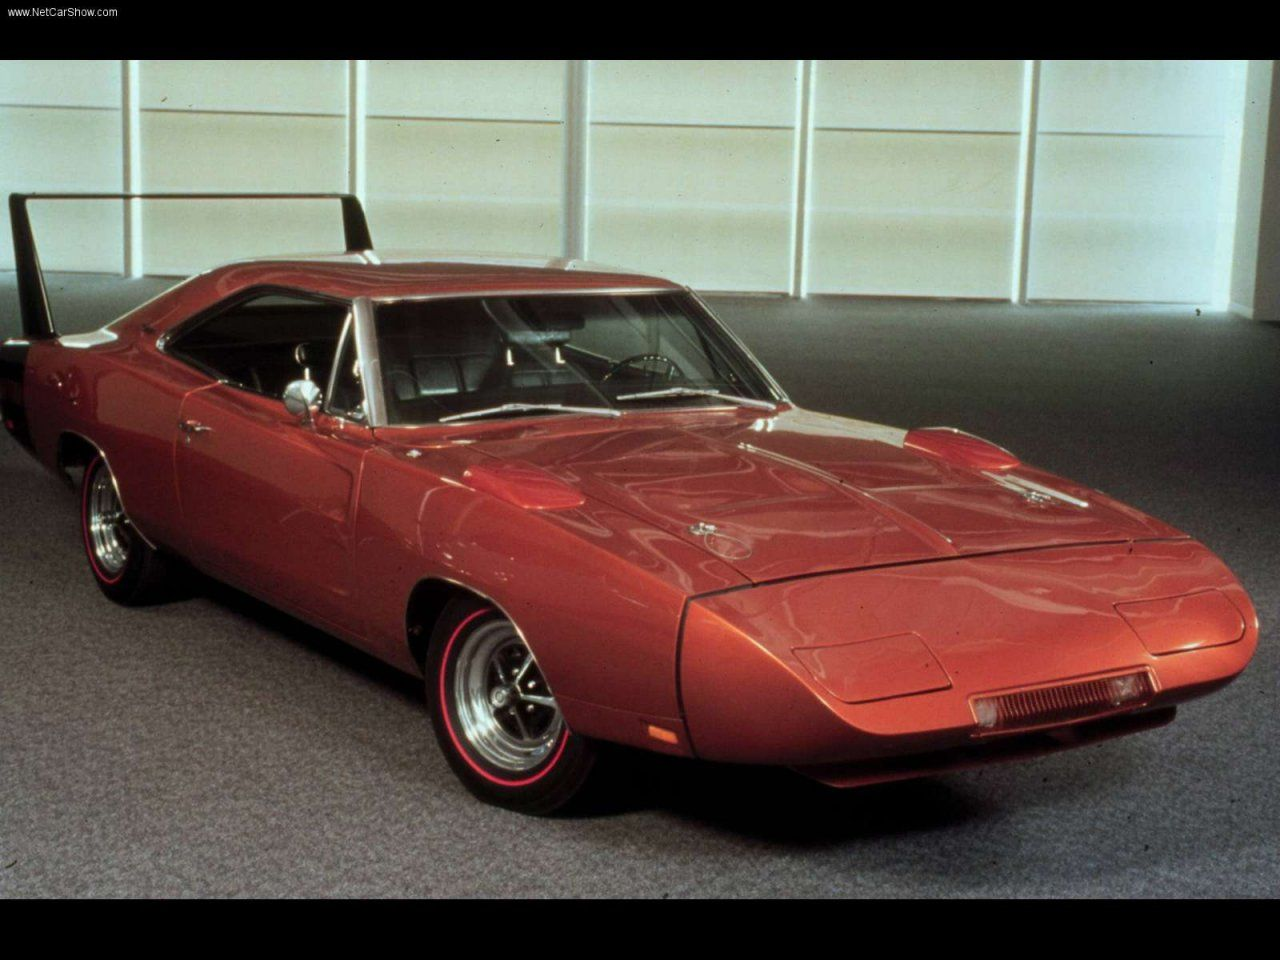 Another vintage mopar muscle car test drive this is a rare video of a 1969 dodge daytona charger with a 426 hemi engine being tested flat out at mont